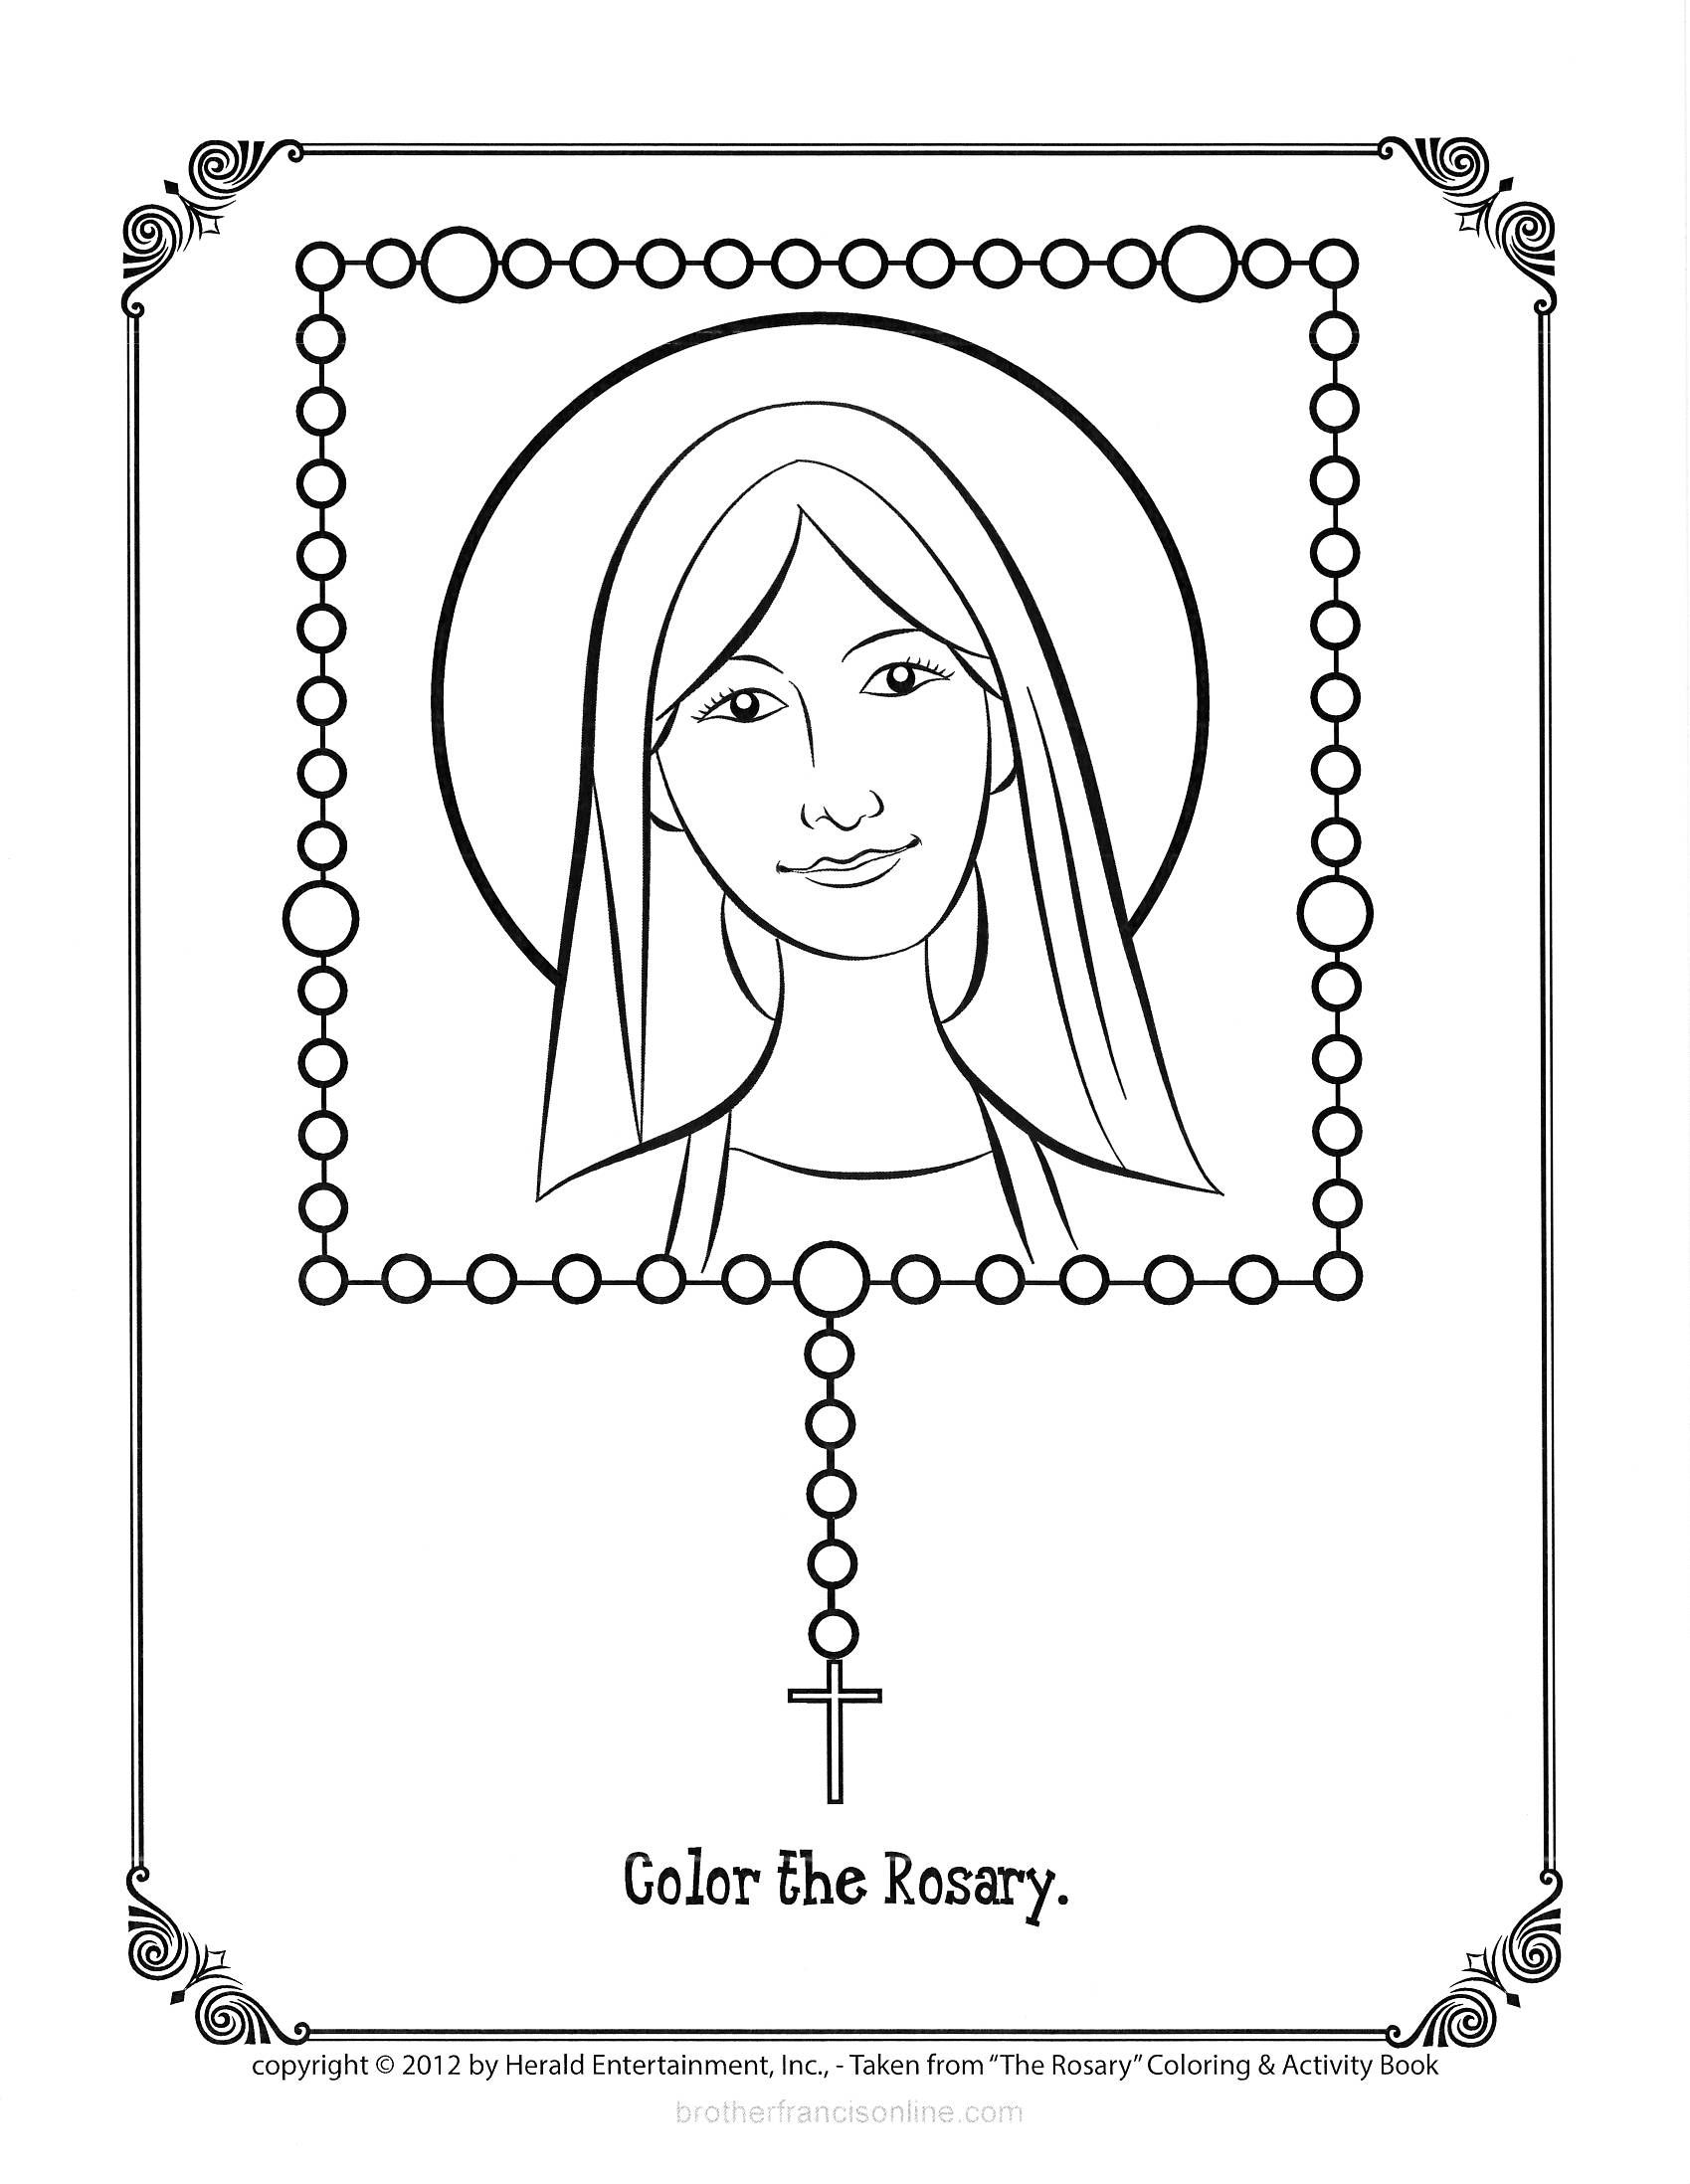 small resolution of pray and color a rosary bead as you complete each prayer and mystery see our other pins for the rosary booklets in english and spanish as well as folding